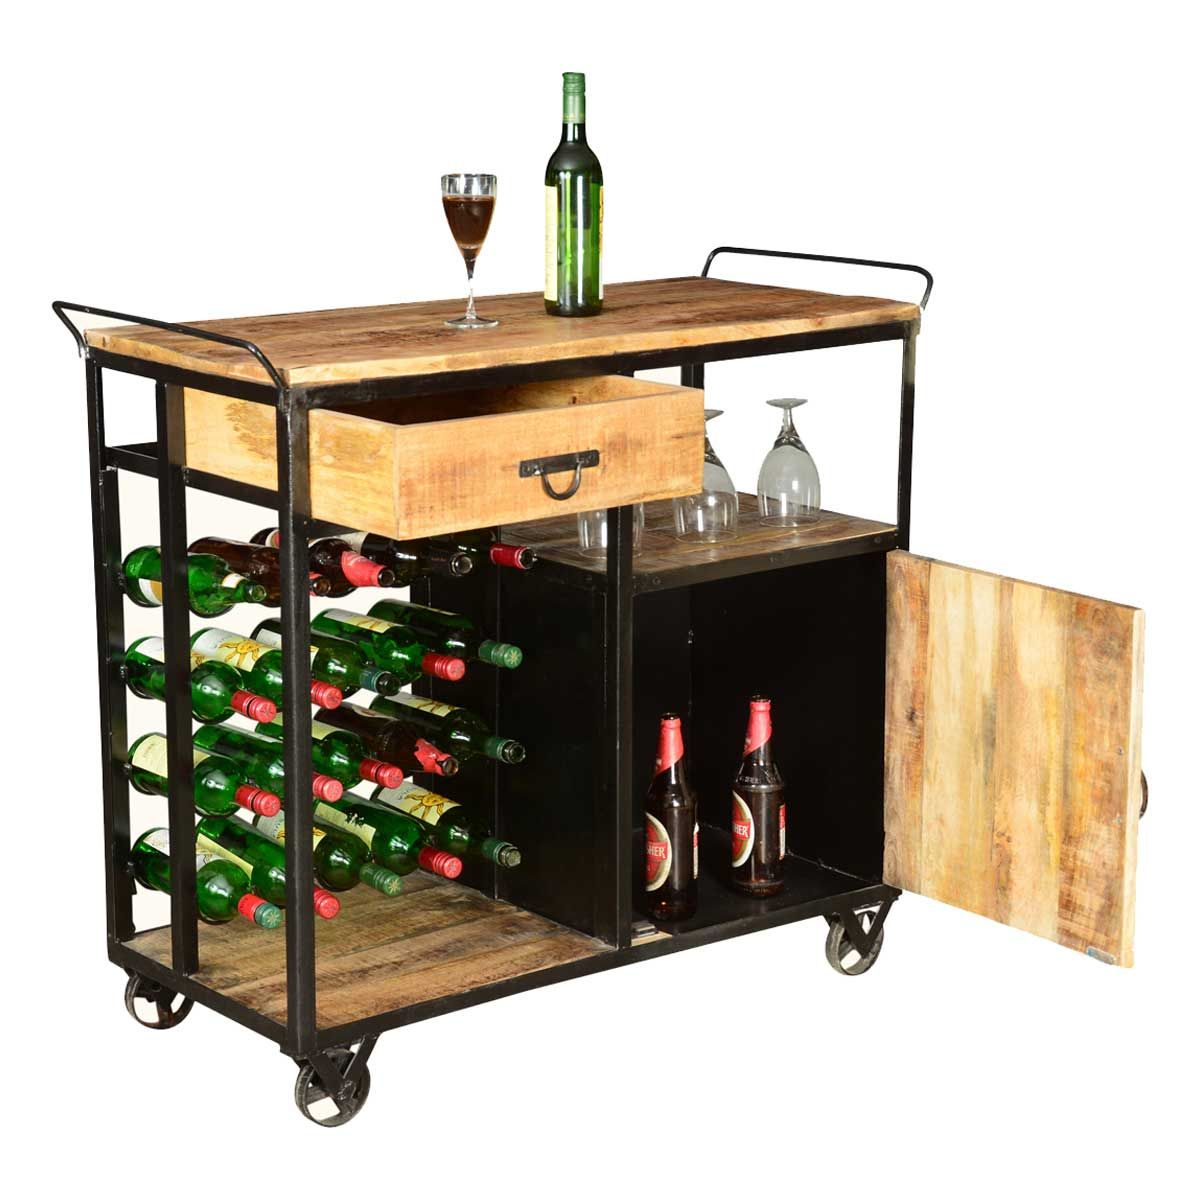 Wine Bar Cart Celebration Wood Industrial Iron Deluxe Rolling